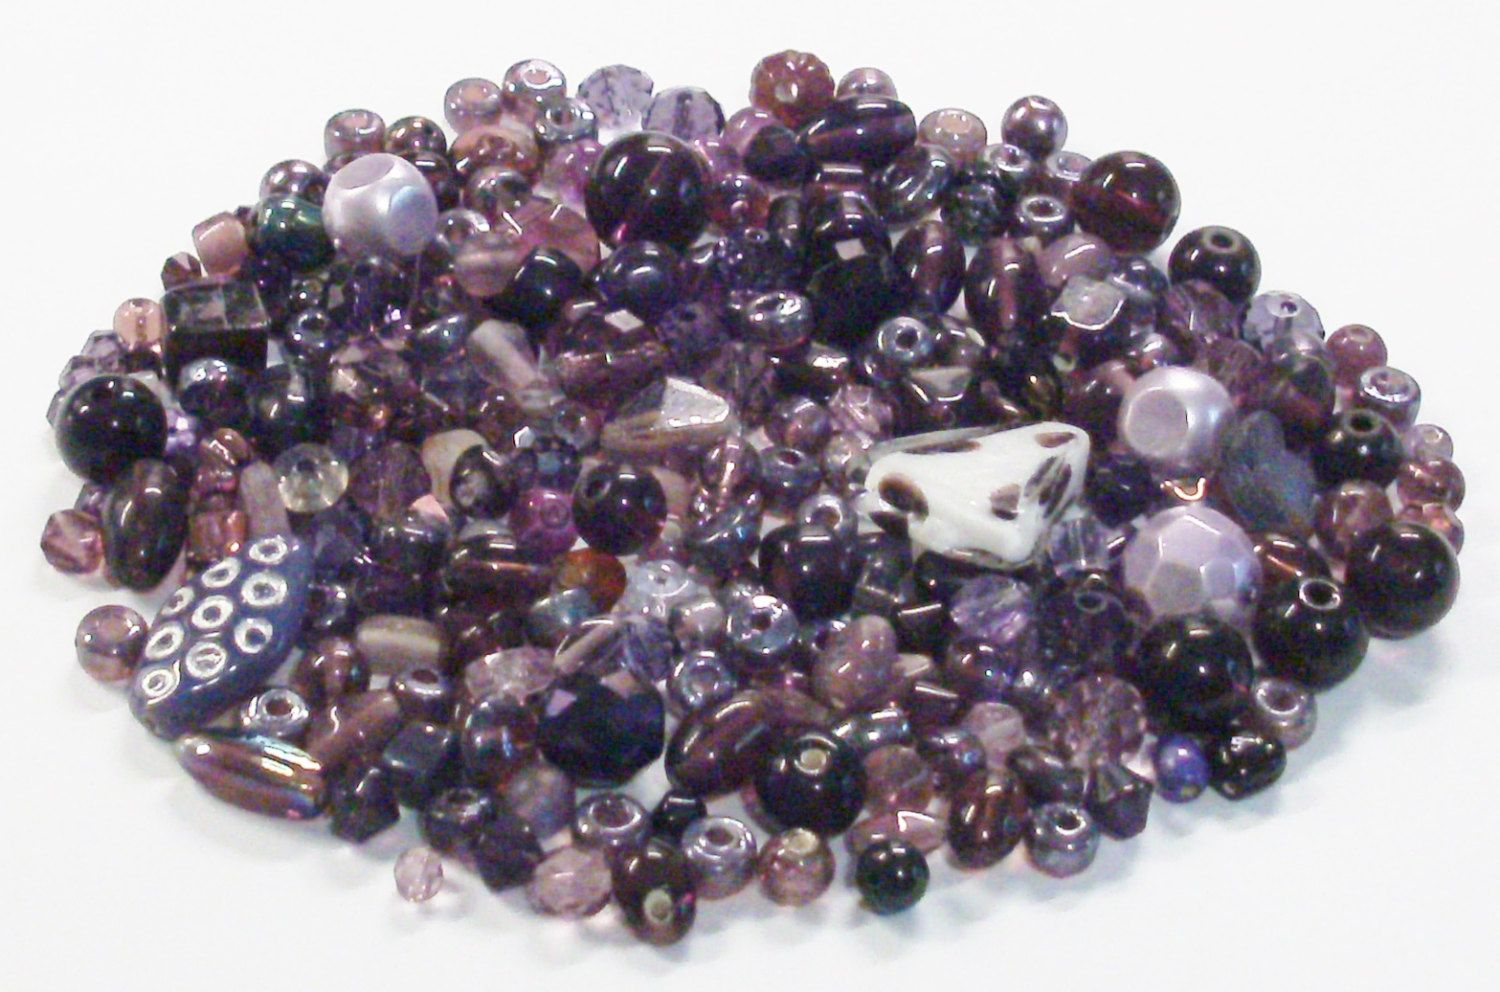 Mixed Lot of 3.3 Oz. of Beads in Shades of Purple by BeadsFromHaven on Etsy